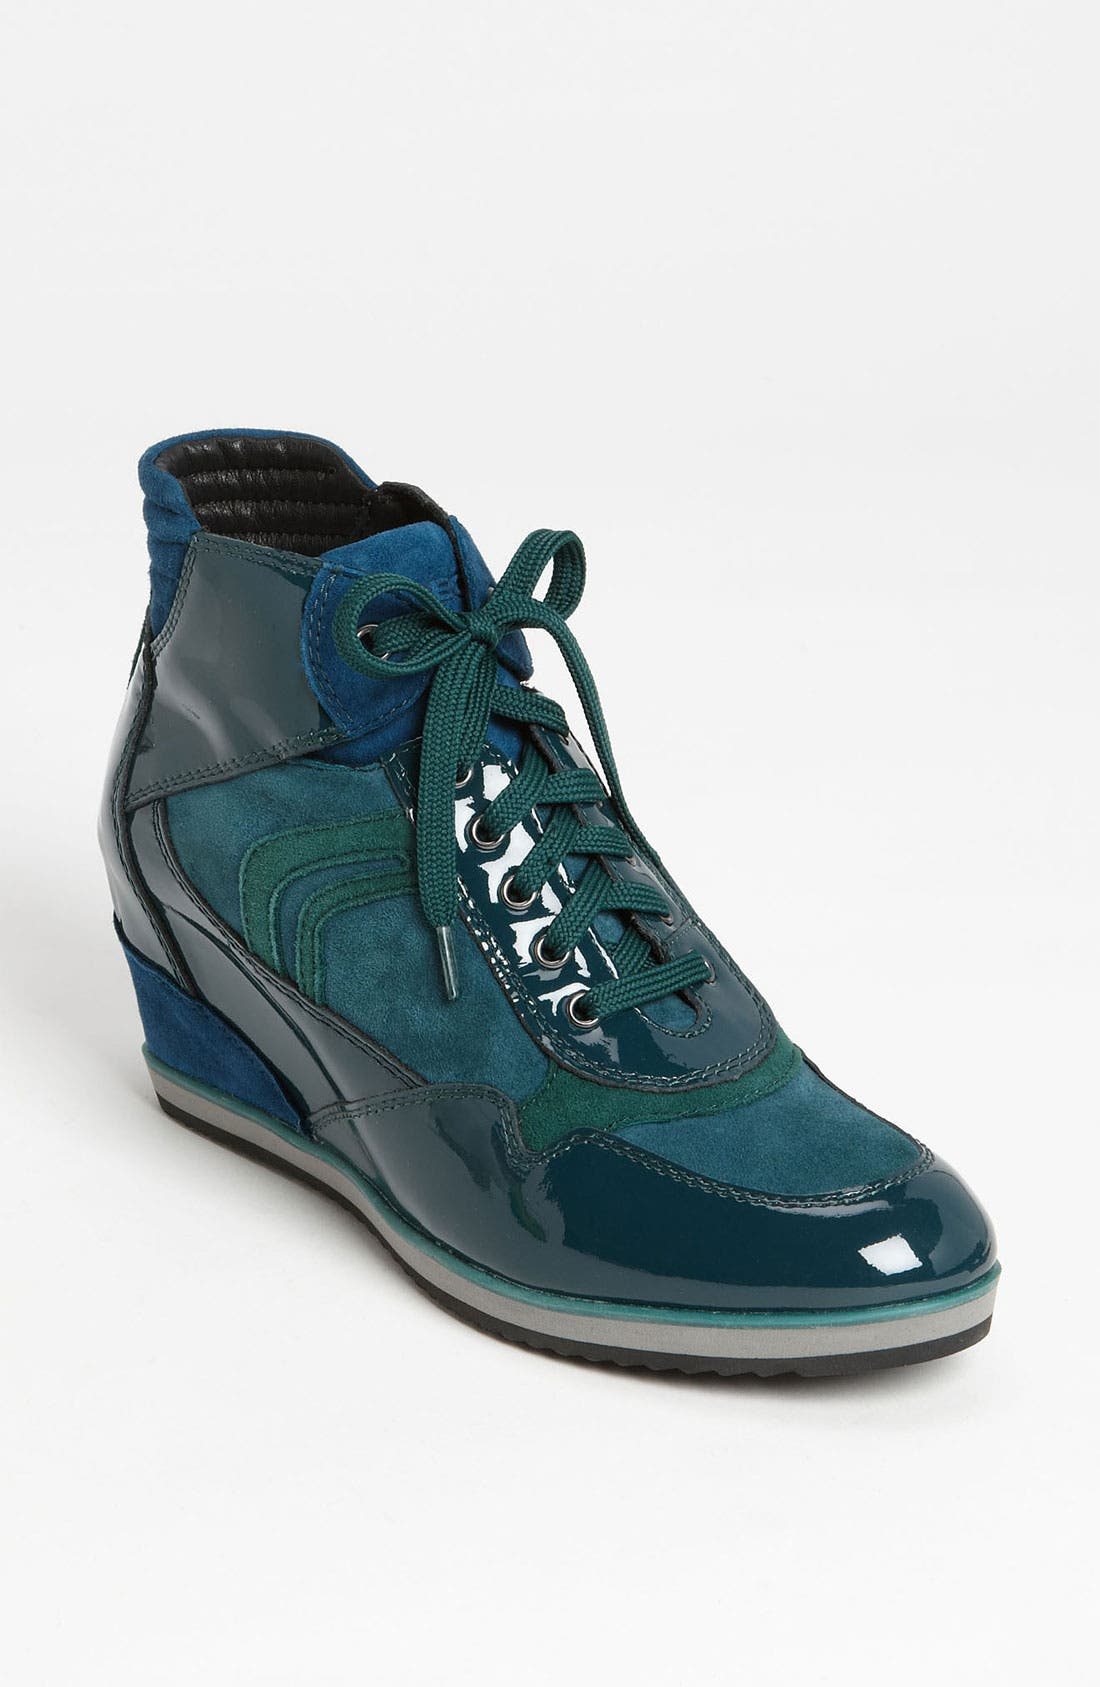 Main Image - Geox 'D Illusion' High Top Wedge Sneaker